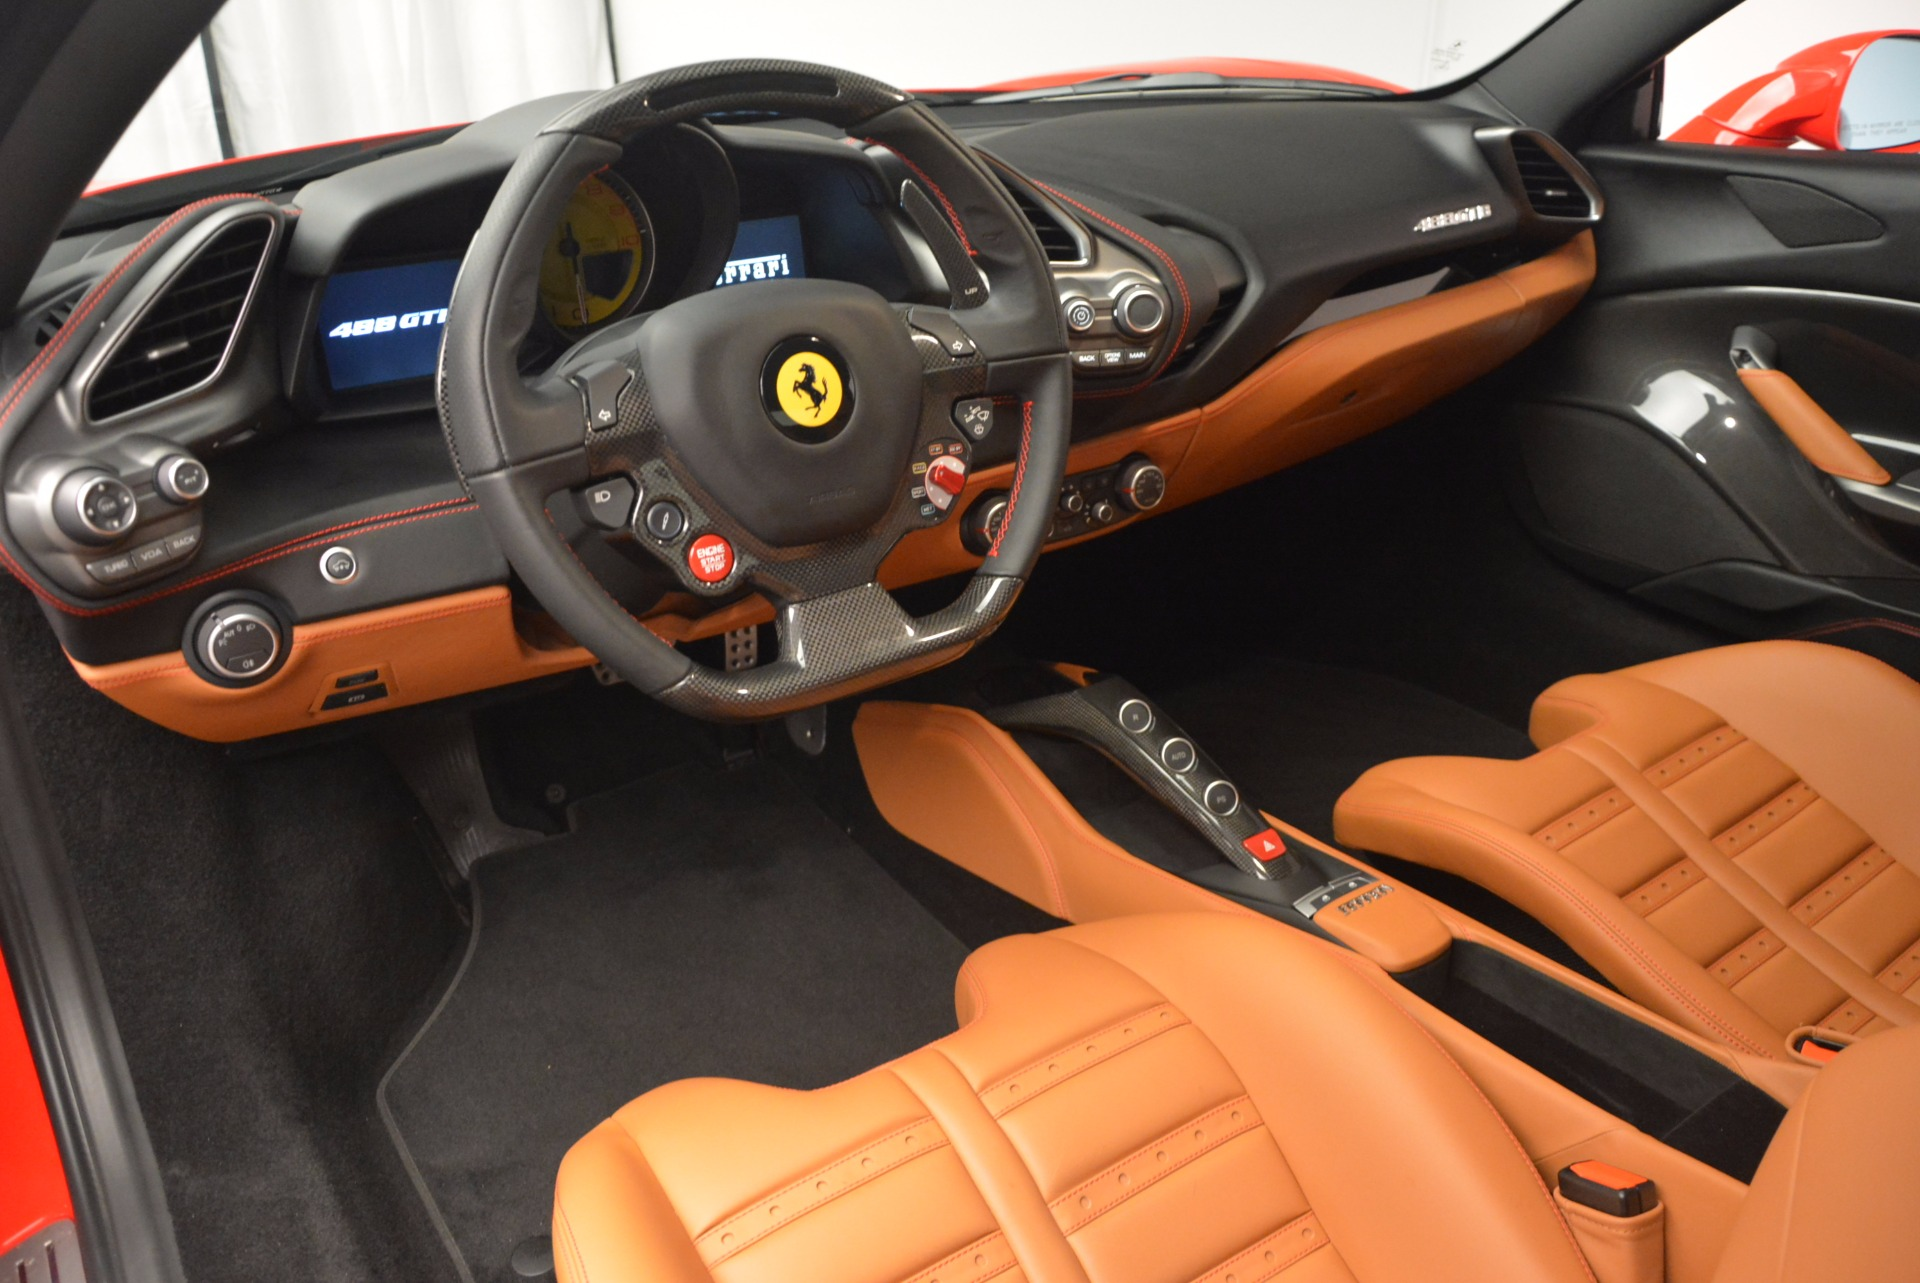 Pre Owned 2016 Ferrari 488 Gtb For Sale Special Pricing Rolls Royce Motor Cars Greenwich Stock 4407